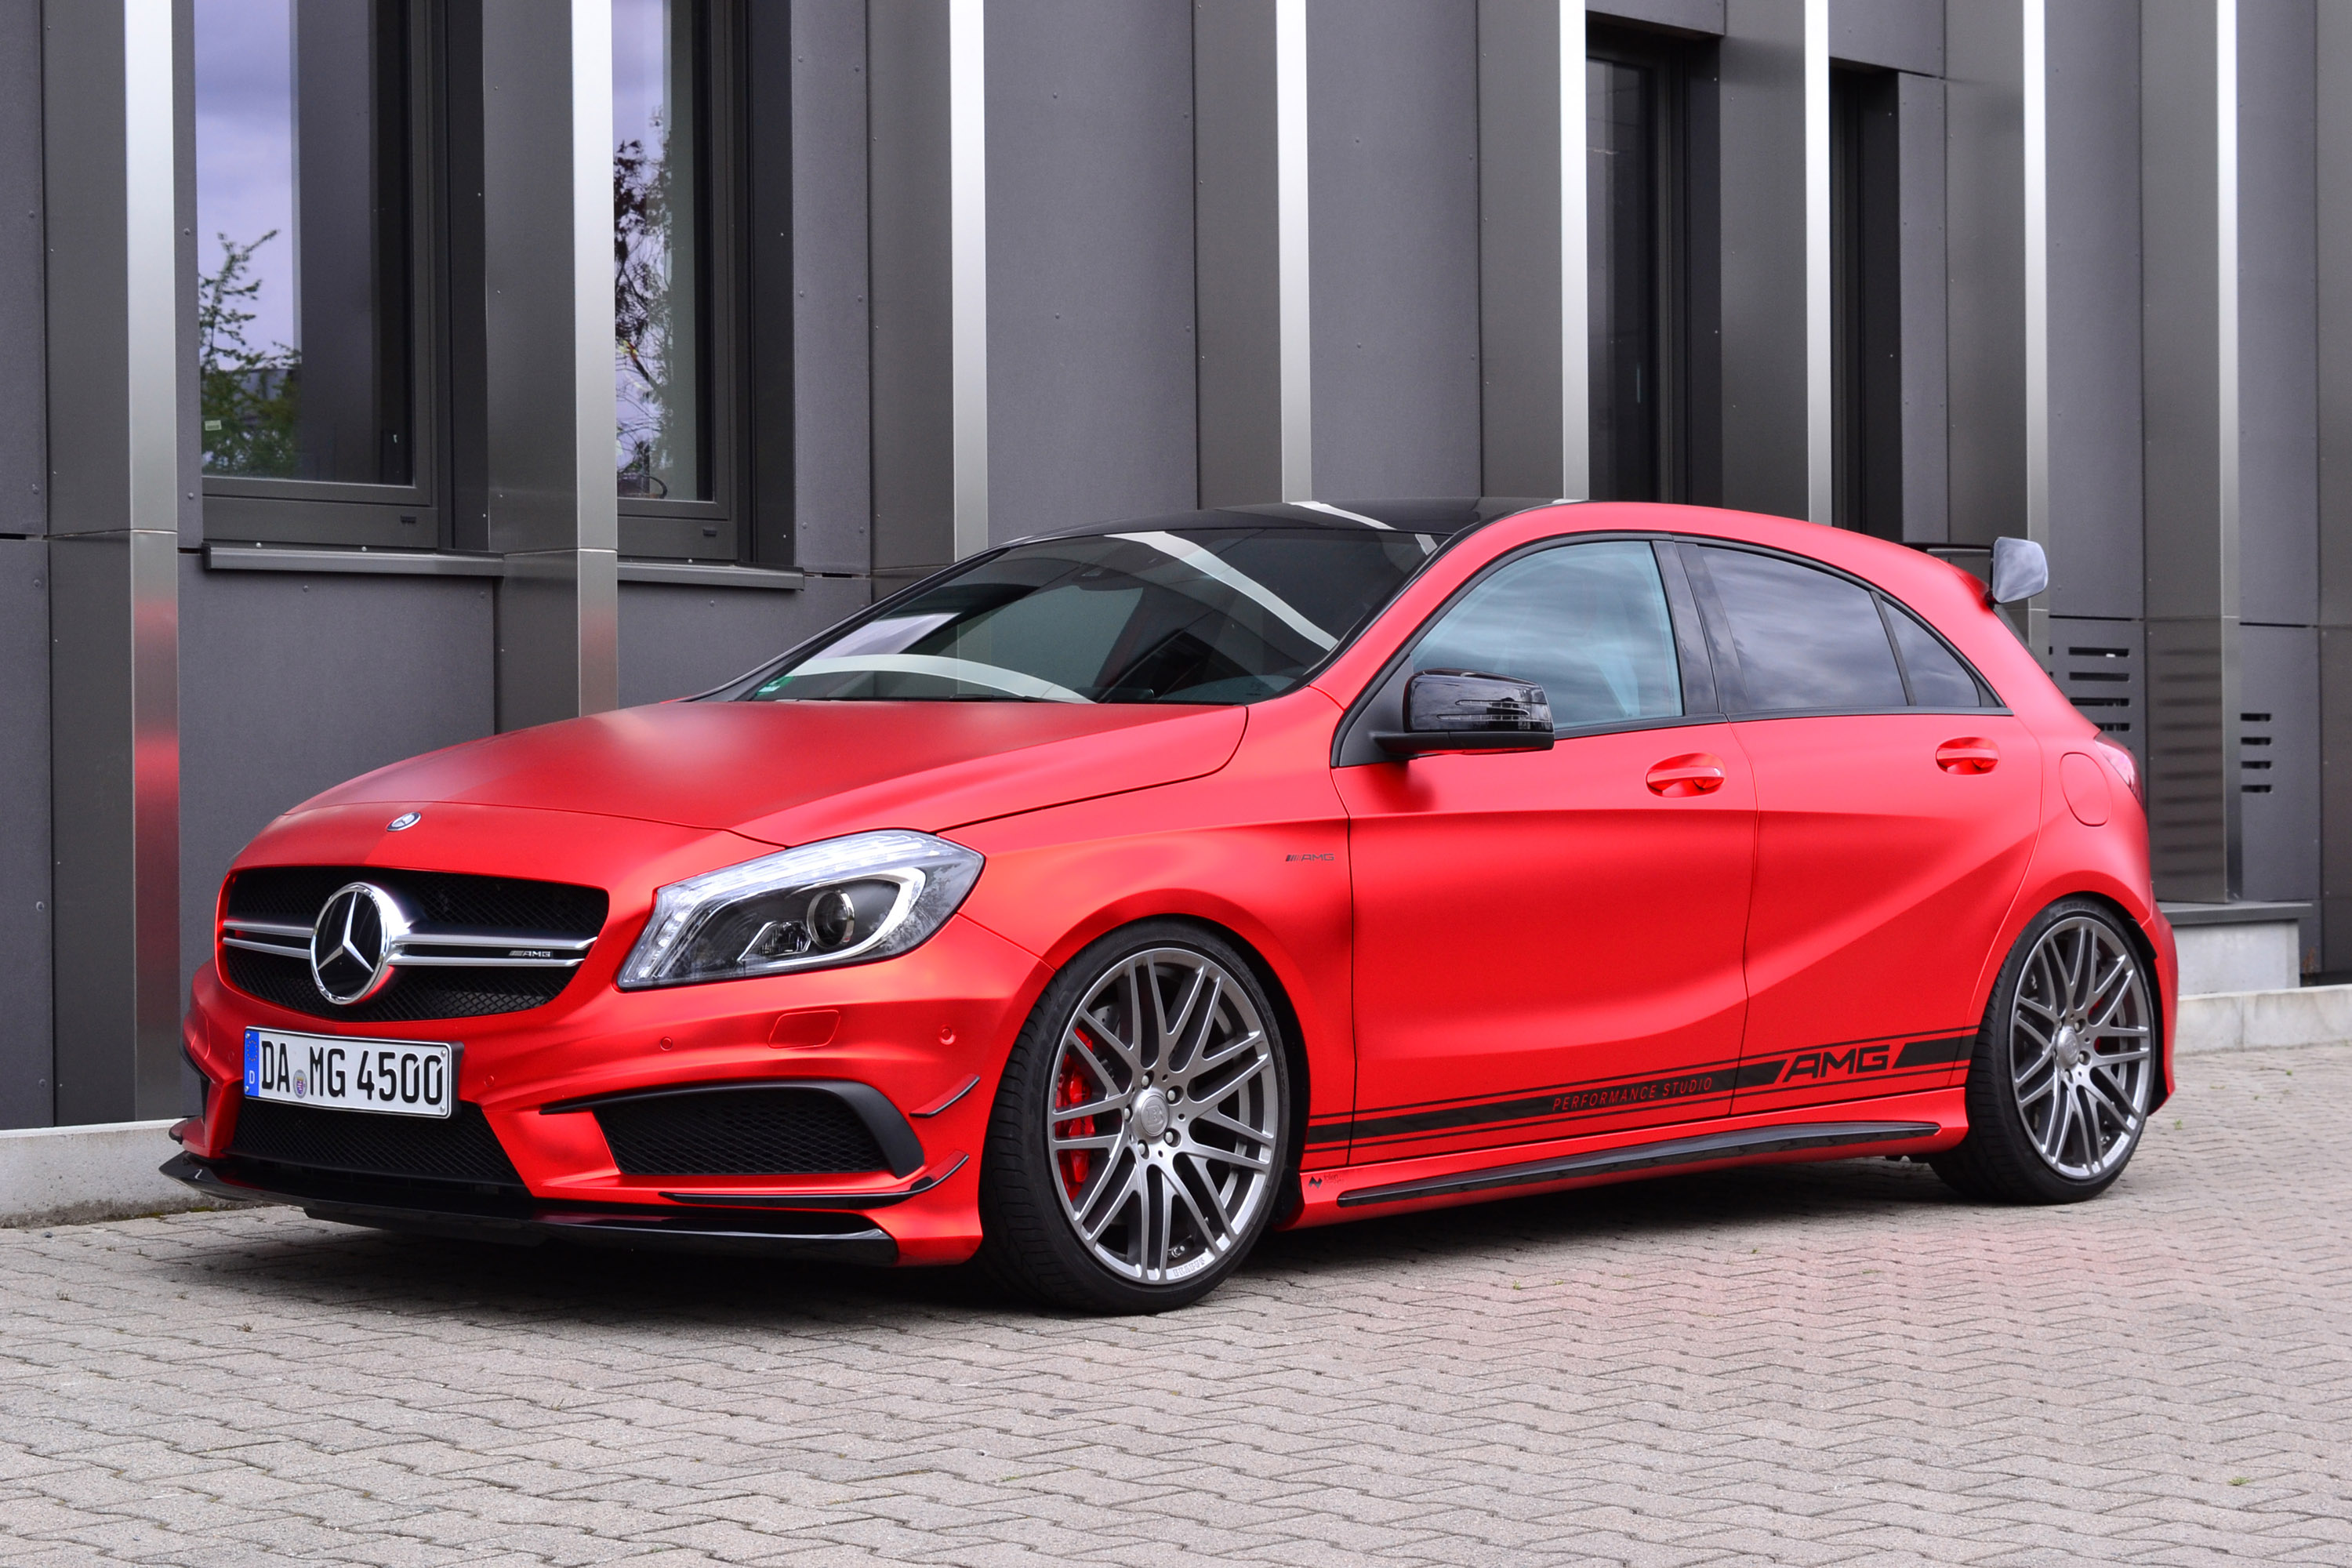 take a look at this mercedes benz a45 amg by folien experte it is 435hp strong. Black Bedroom Furniture Sets. Home Design Ideas